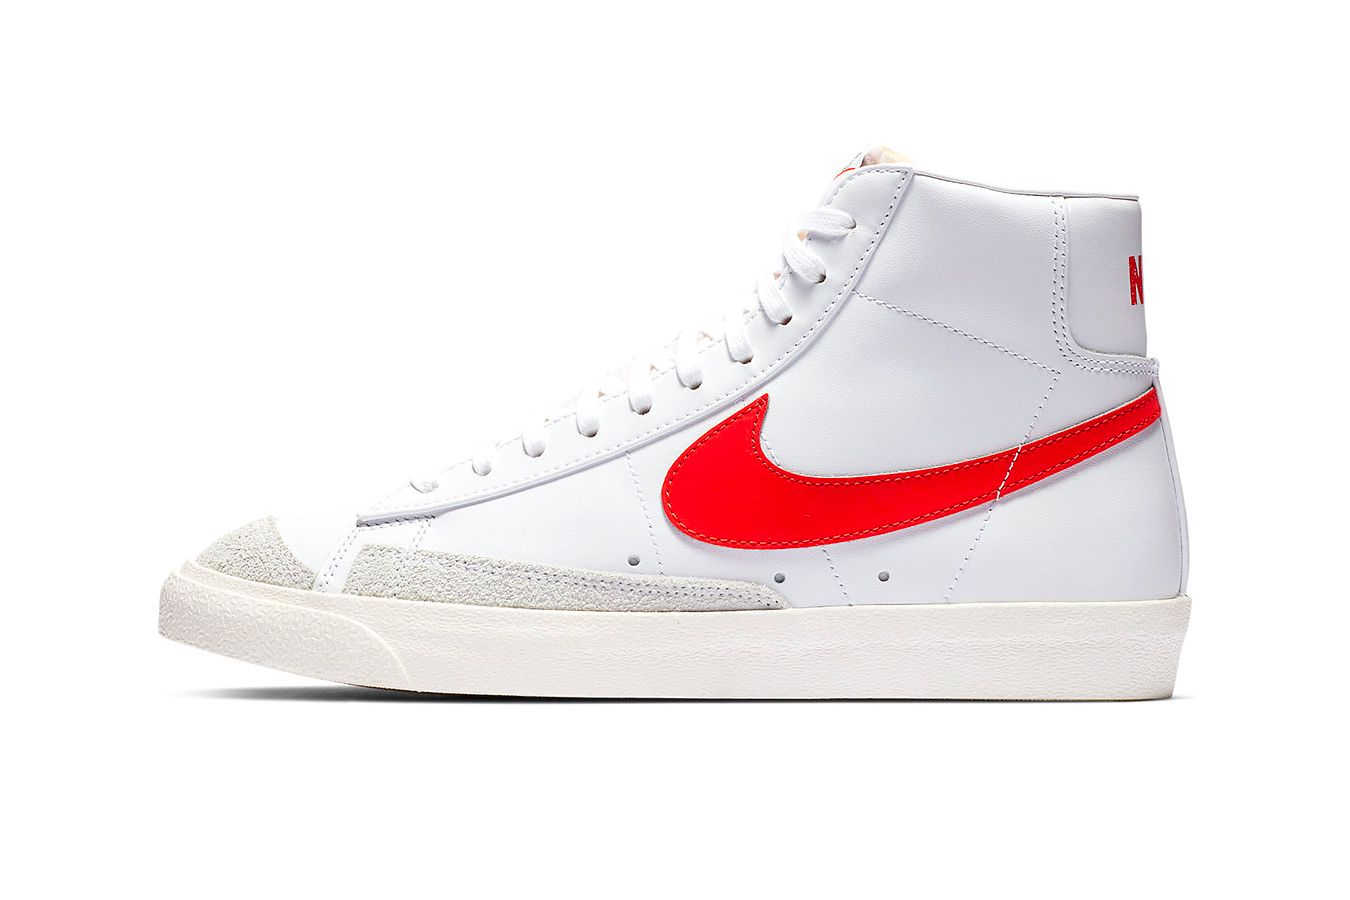 9fbe00d7d9ff Nike Blazer Mid 77 vintage 2019 info sportswear kicks og colorway red  classic basketball retro january 1 drop date BQ6806-600 Habanero Red white  orange